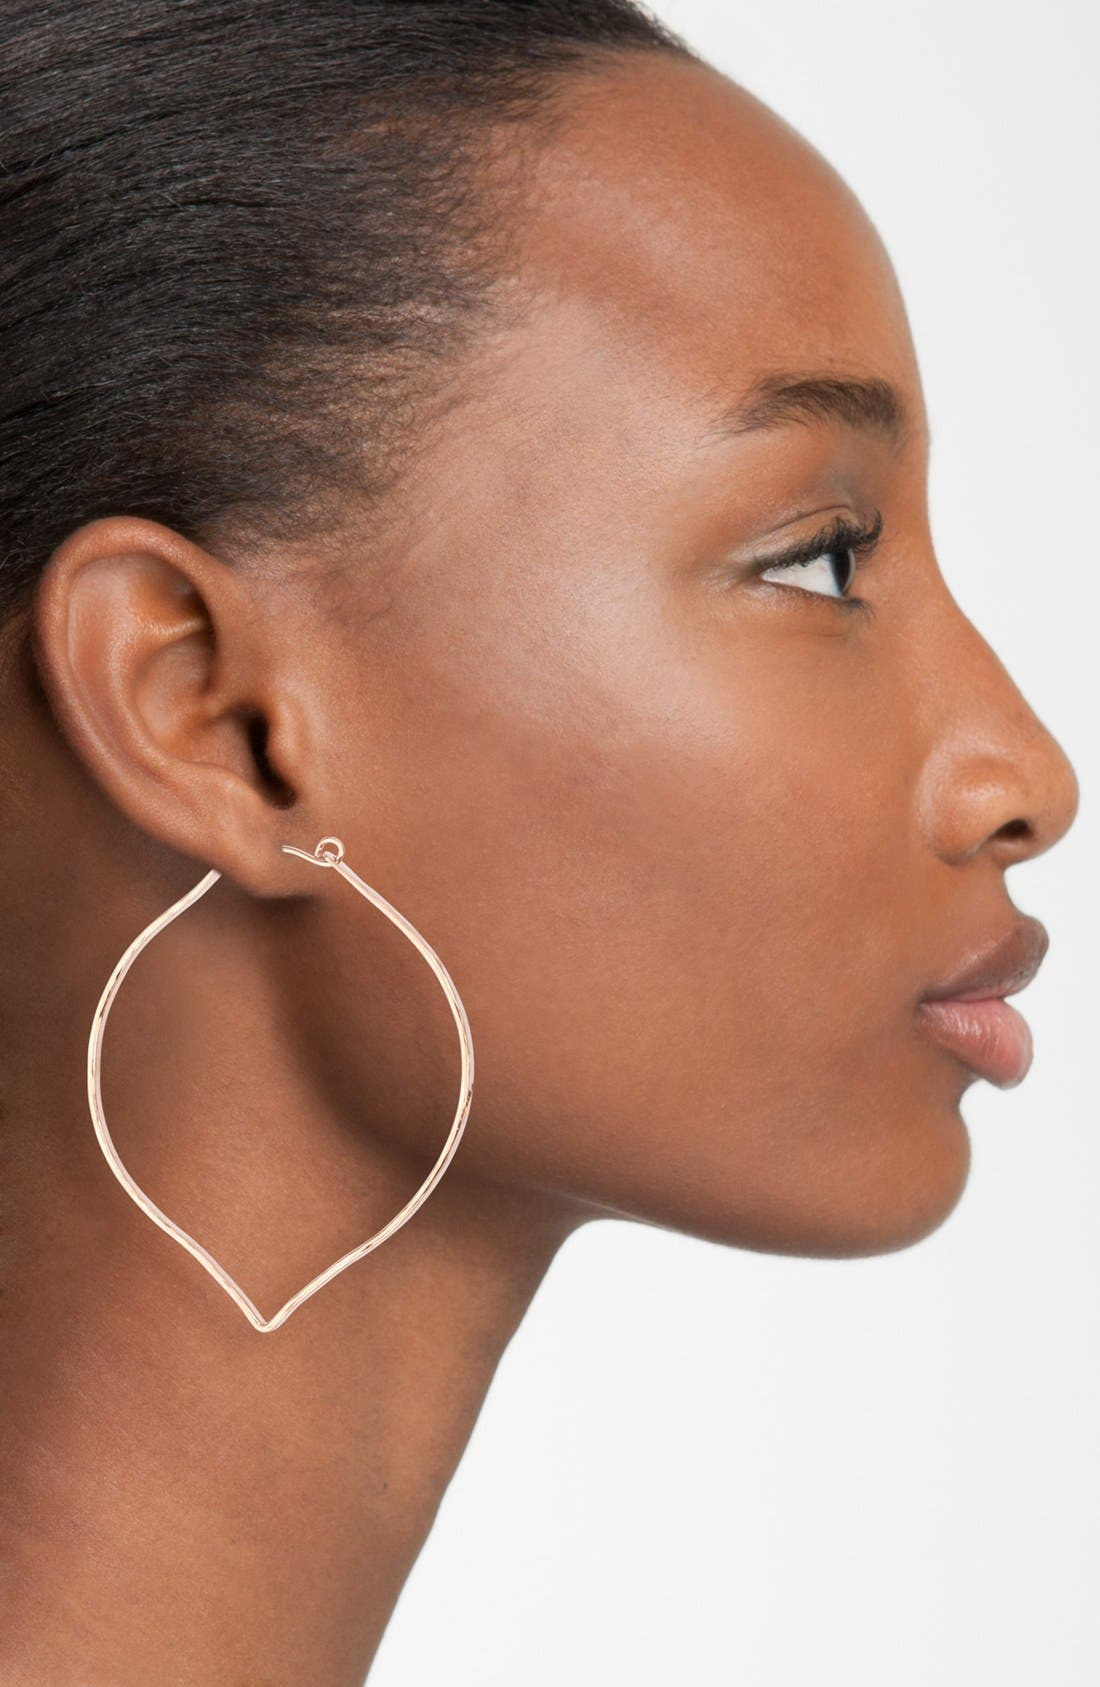 Ija 'Large' 14k-Rose Gold Fill Lotus Hoop Earrings,                             Alternate thumbnail 2, color,                             220